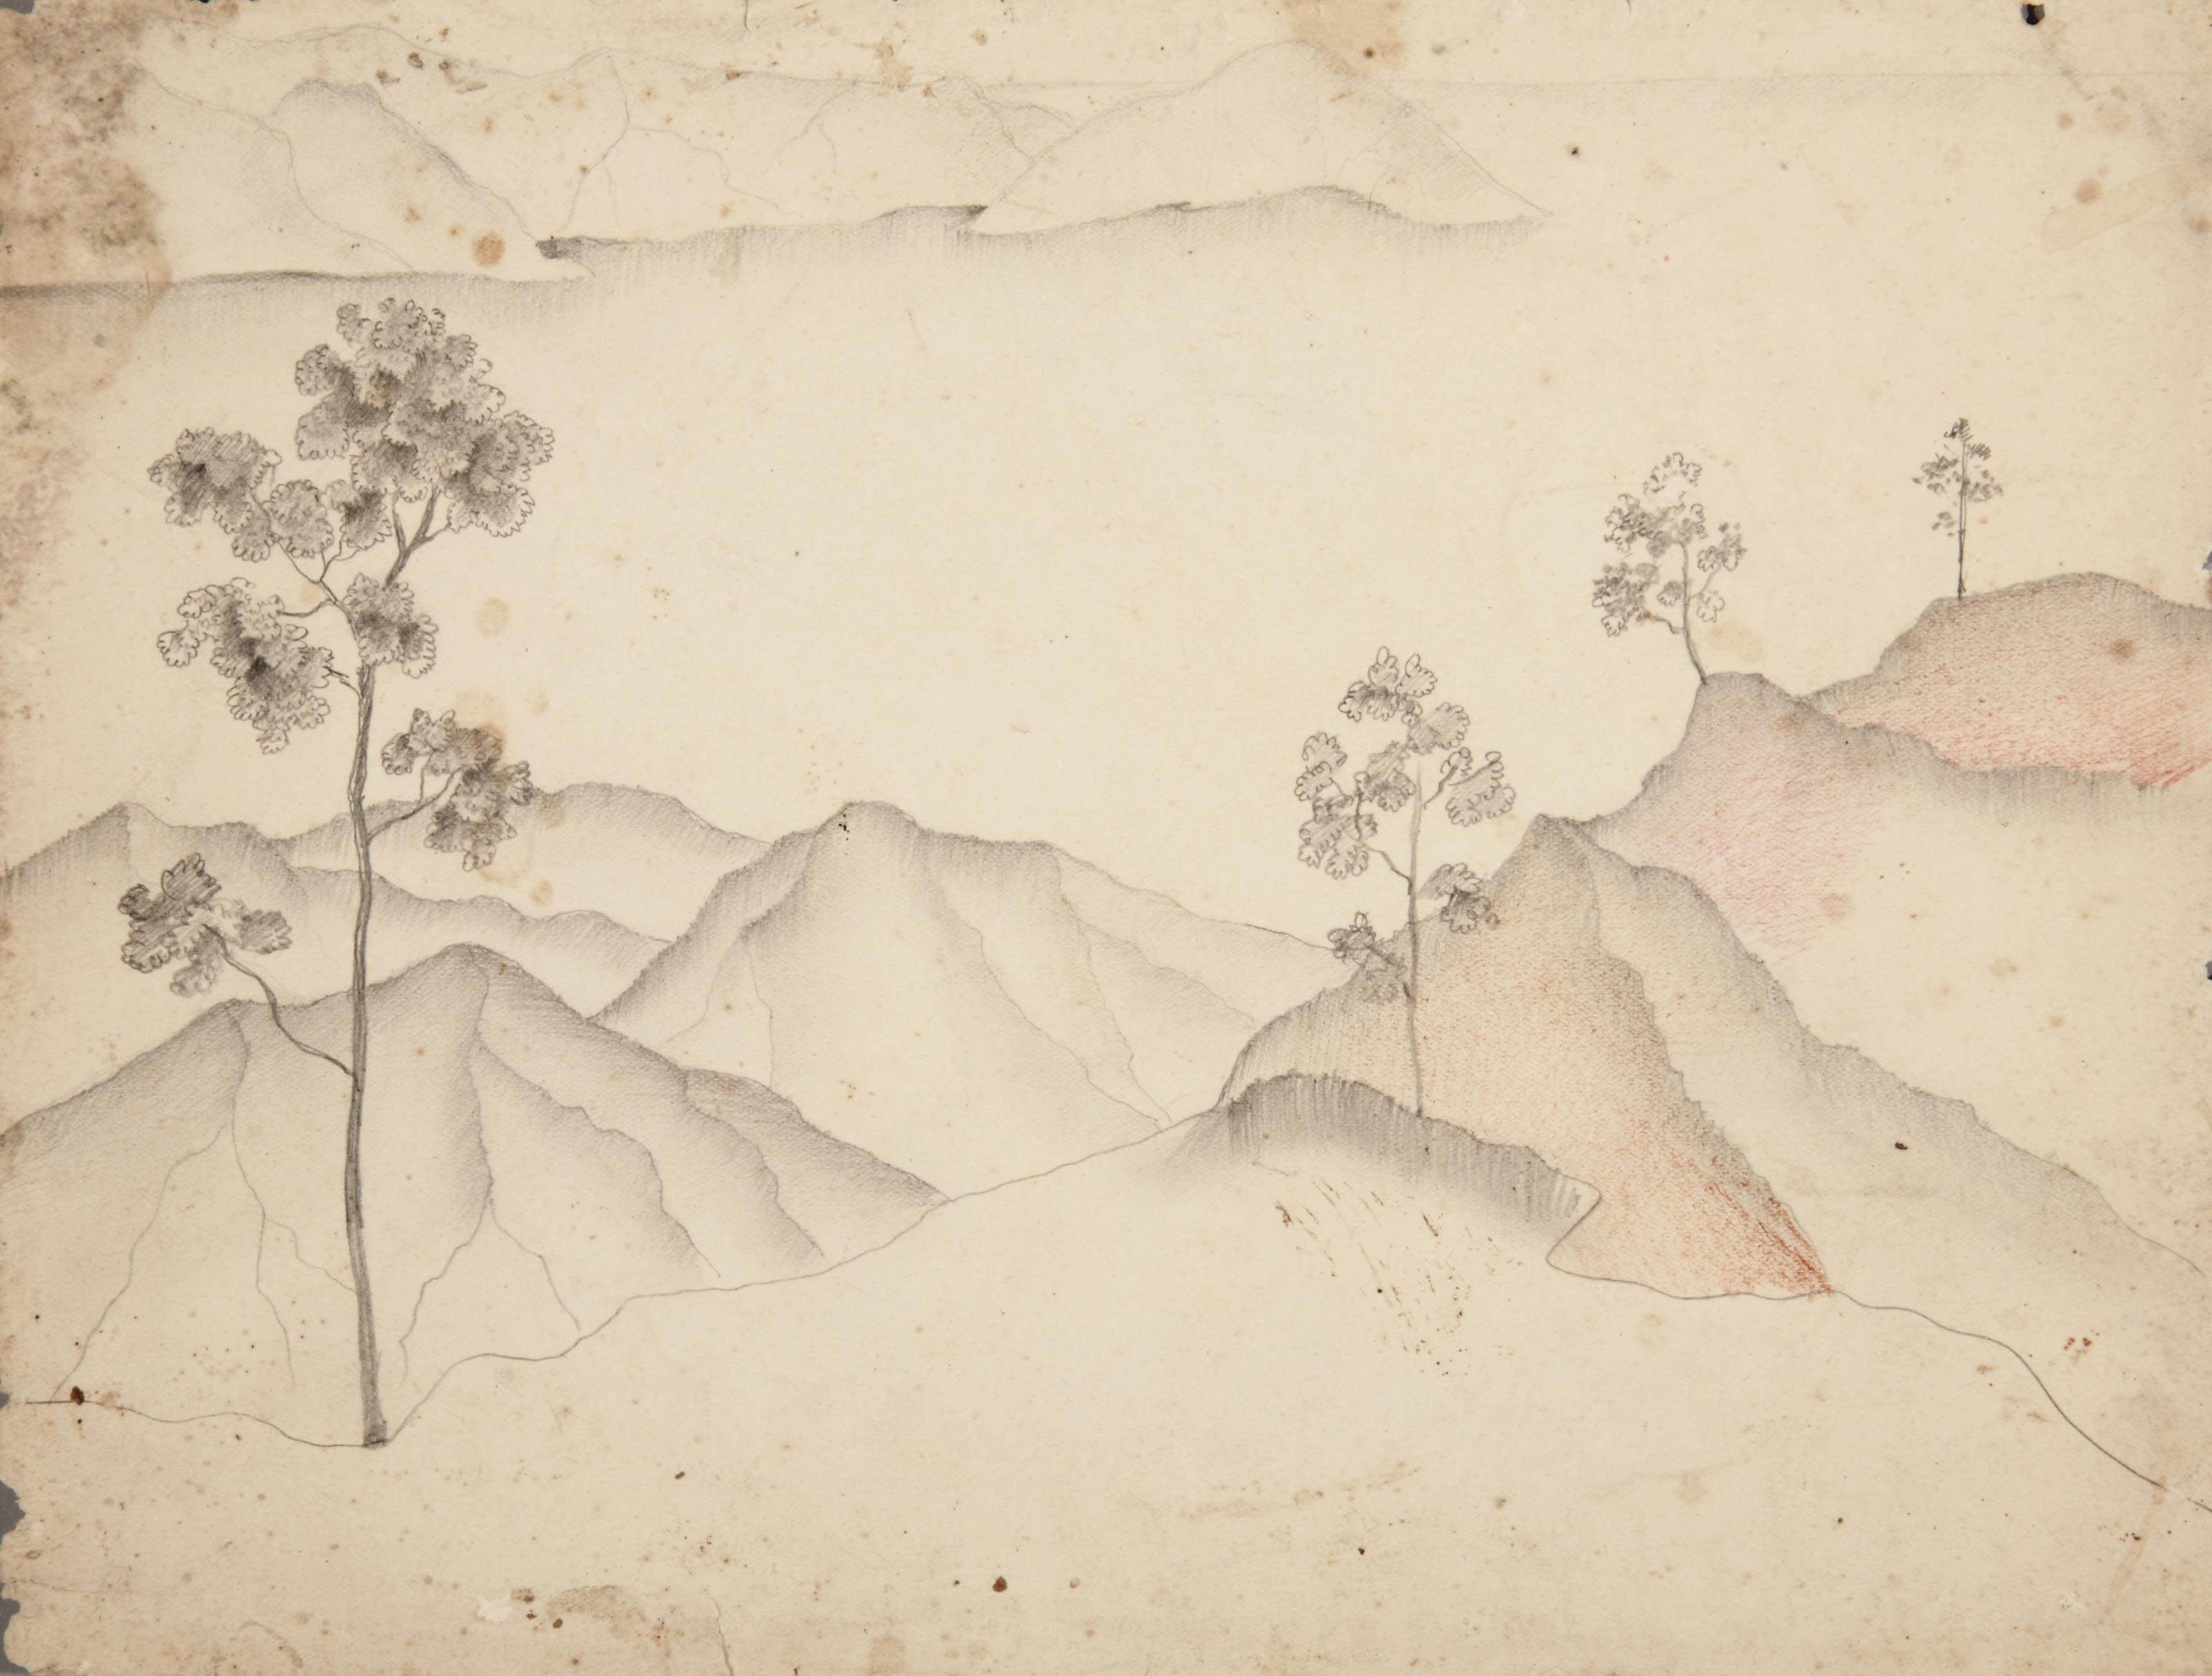 Balinese landscape (recto) - Study for seated man (verso)